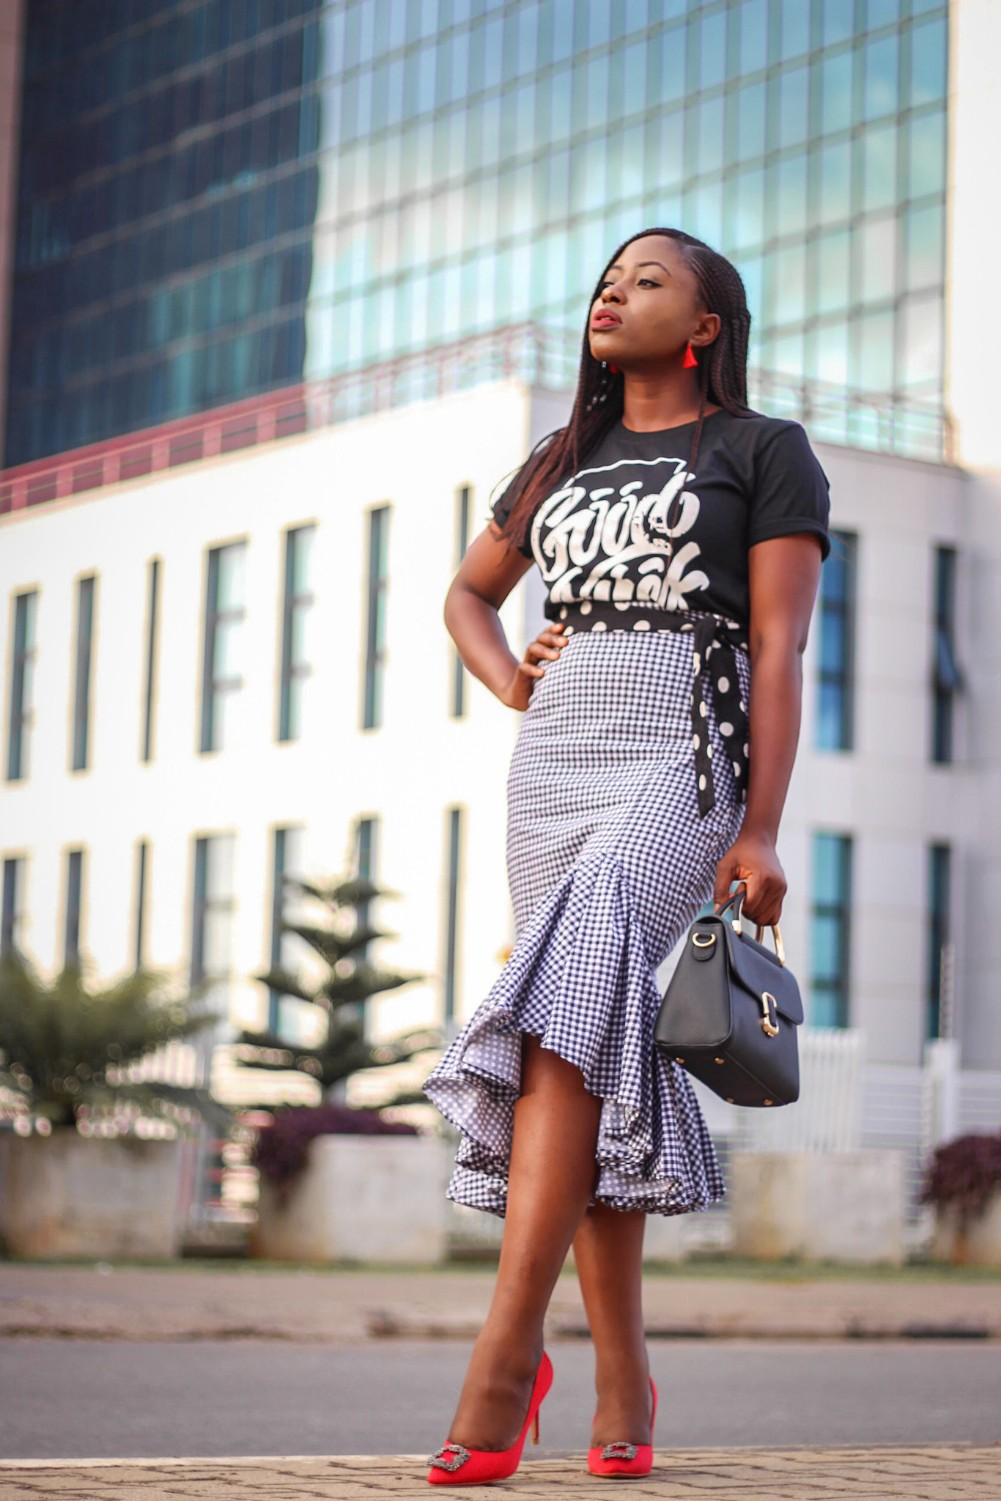 Gingham waterfall skirt and black graphic T-shirt